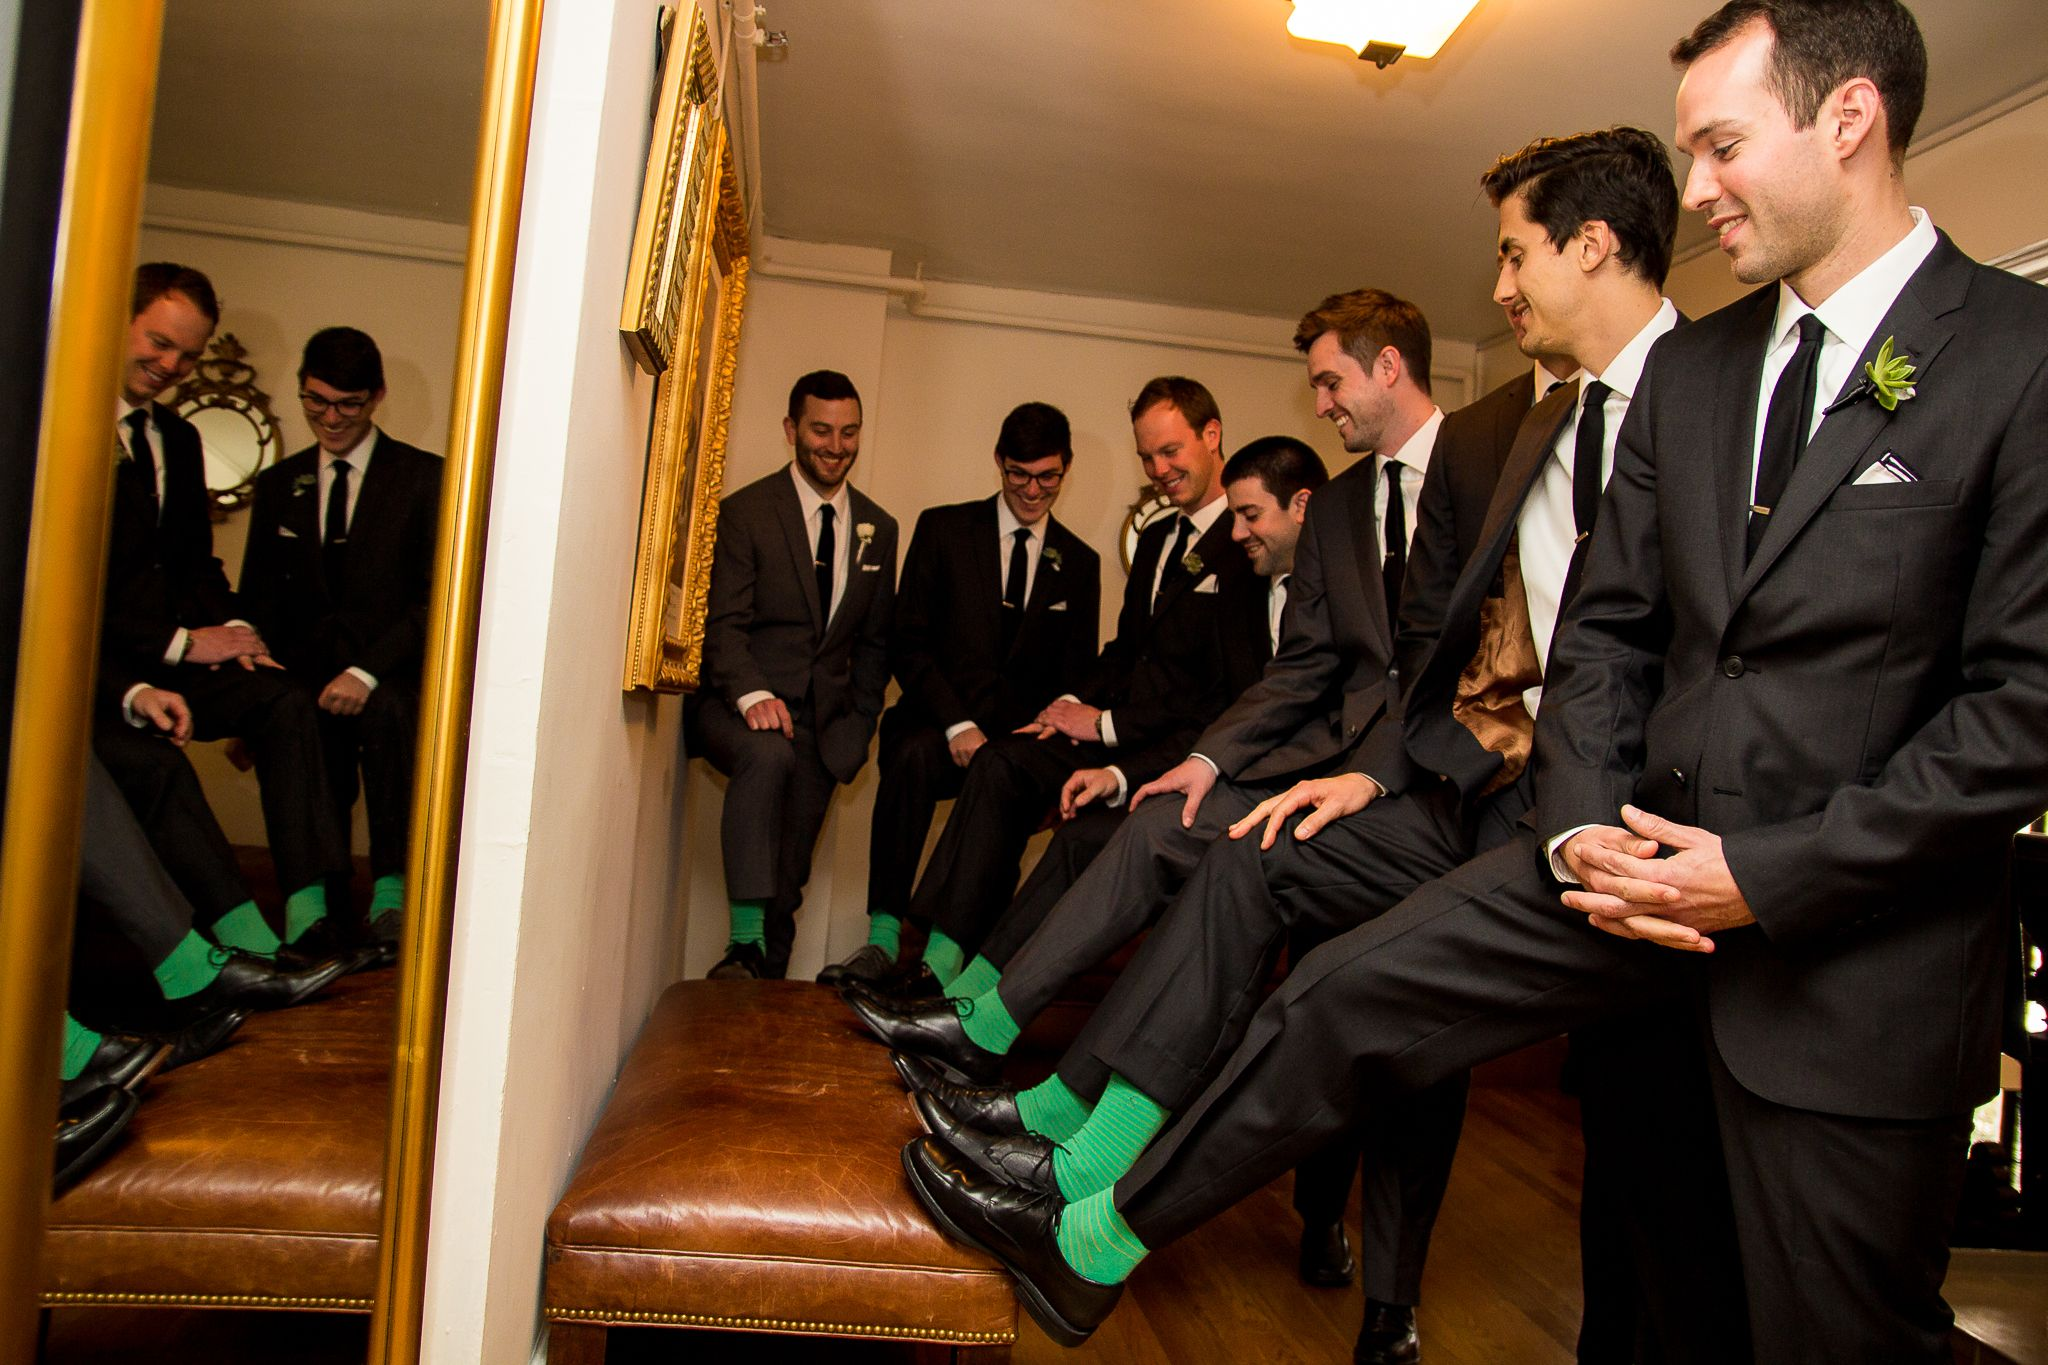 Brian Pescatore Photography | #AldenCastle #LongwoodVenues #Boston #Wedding #BostonWedding #Groom #Groomsmen #Socks #Photography  http://longwoodevents.com http://www.brianpescatorephotography.com